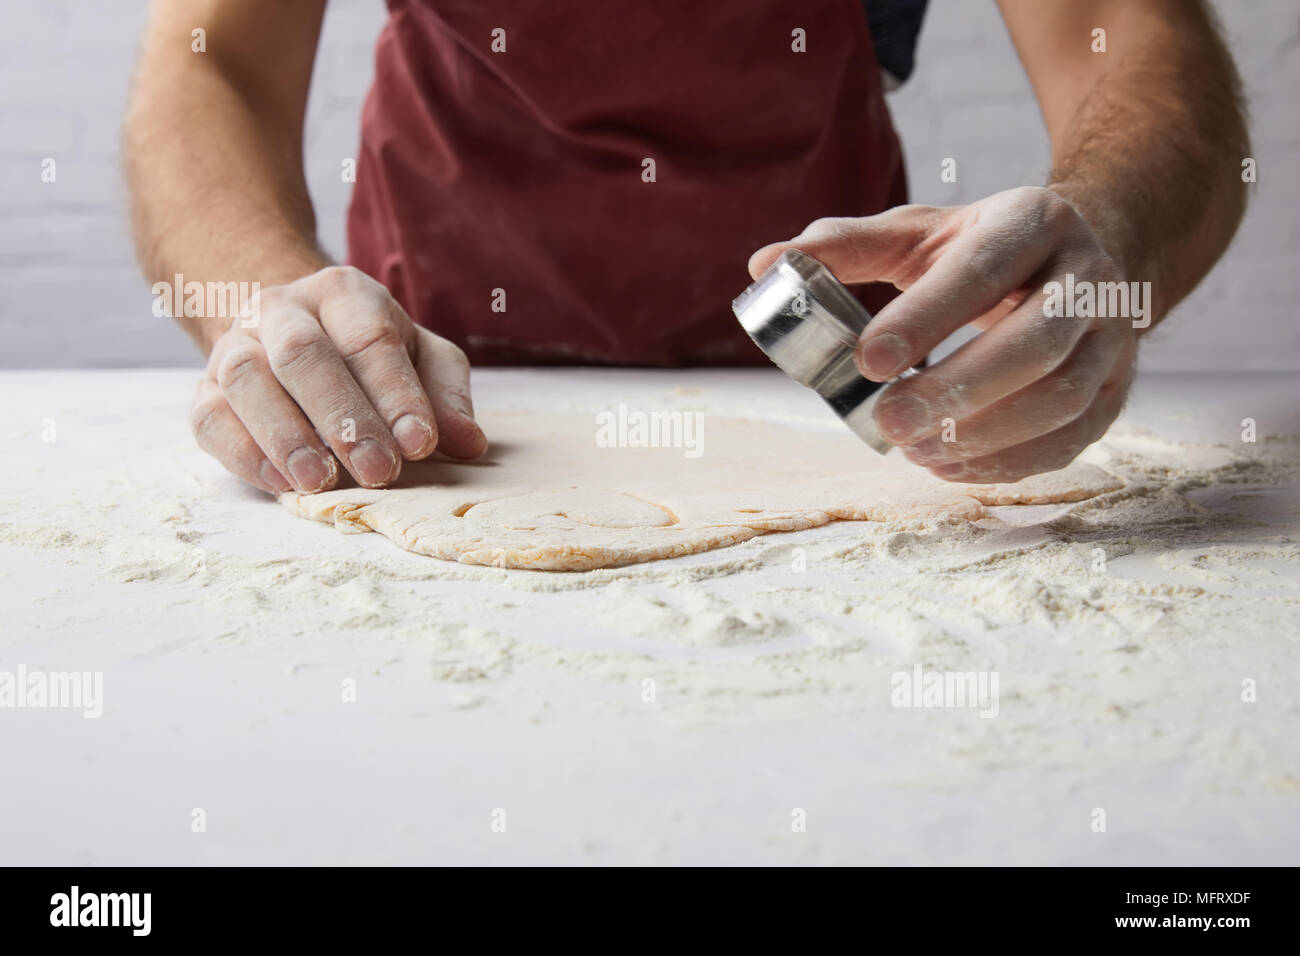 cropped image of chef preparing heart shaped cookies with dough mold, valentines day concept - Stock Image